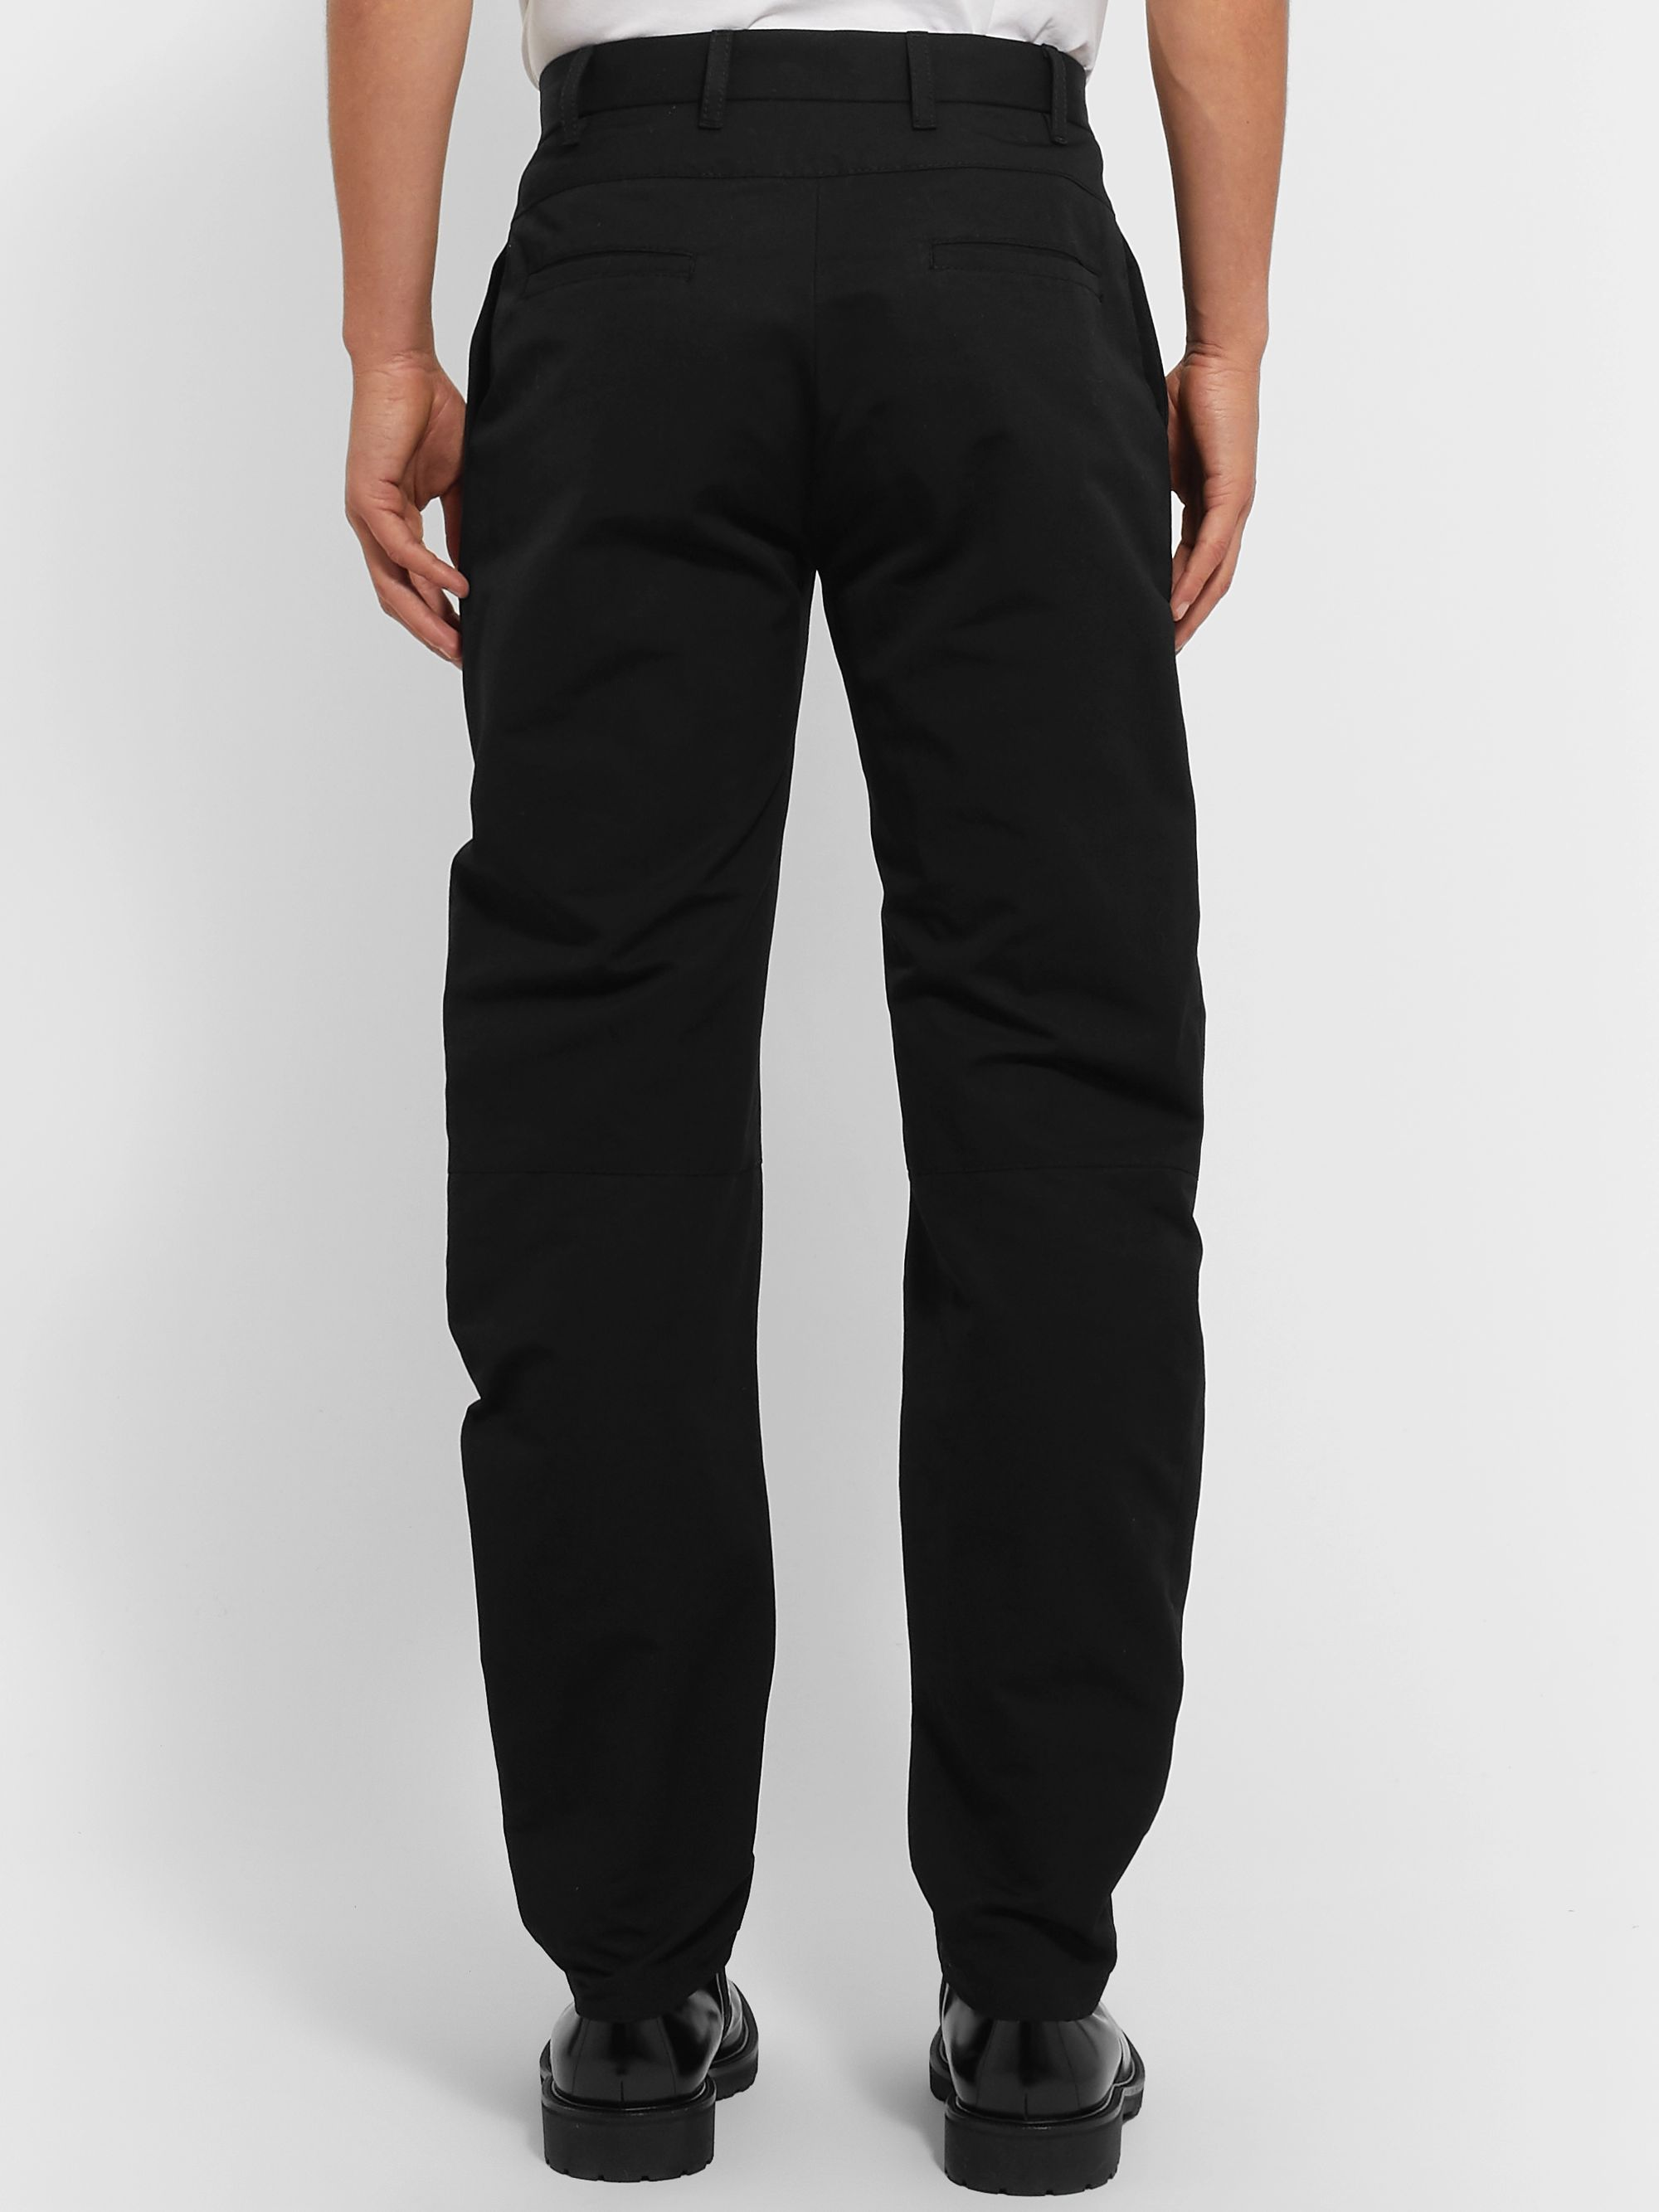 Bottega Veneta Black Tapered Cotton-Gabardine Trousers